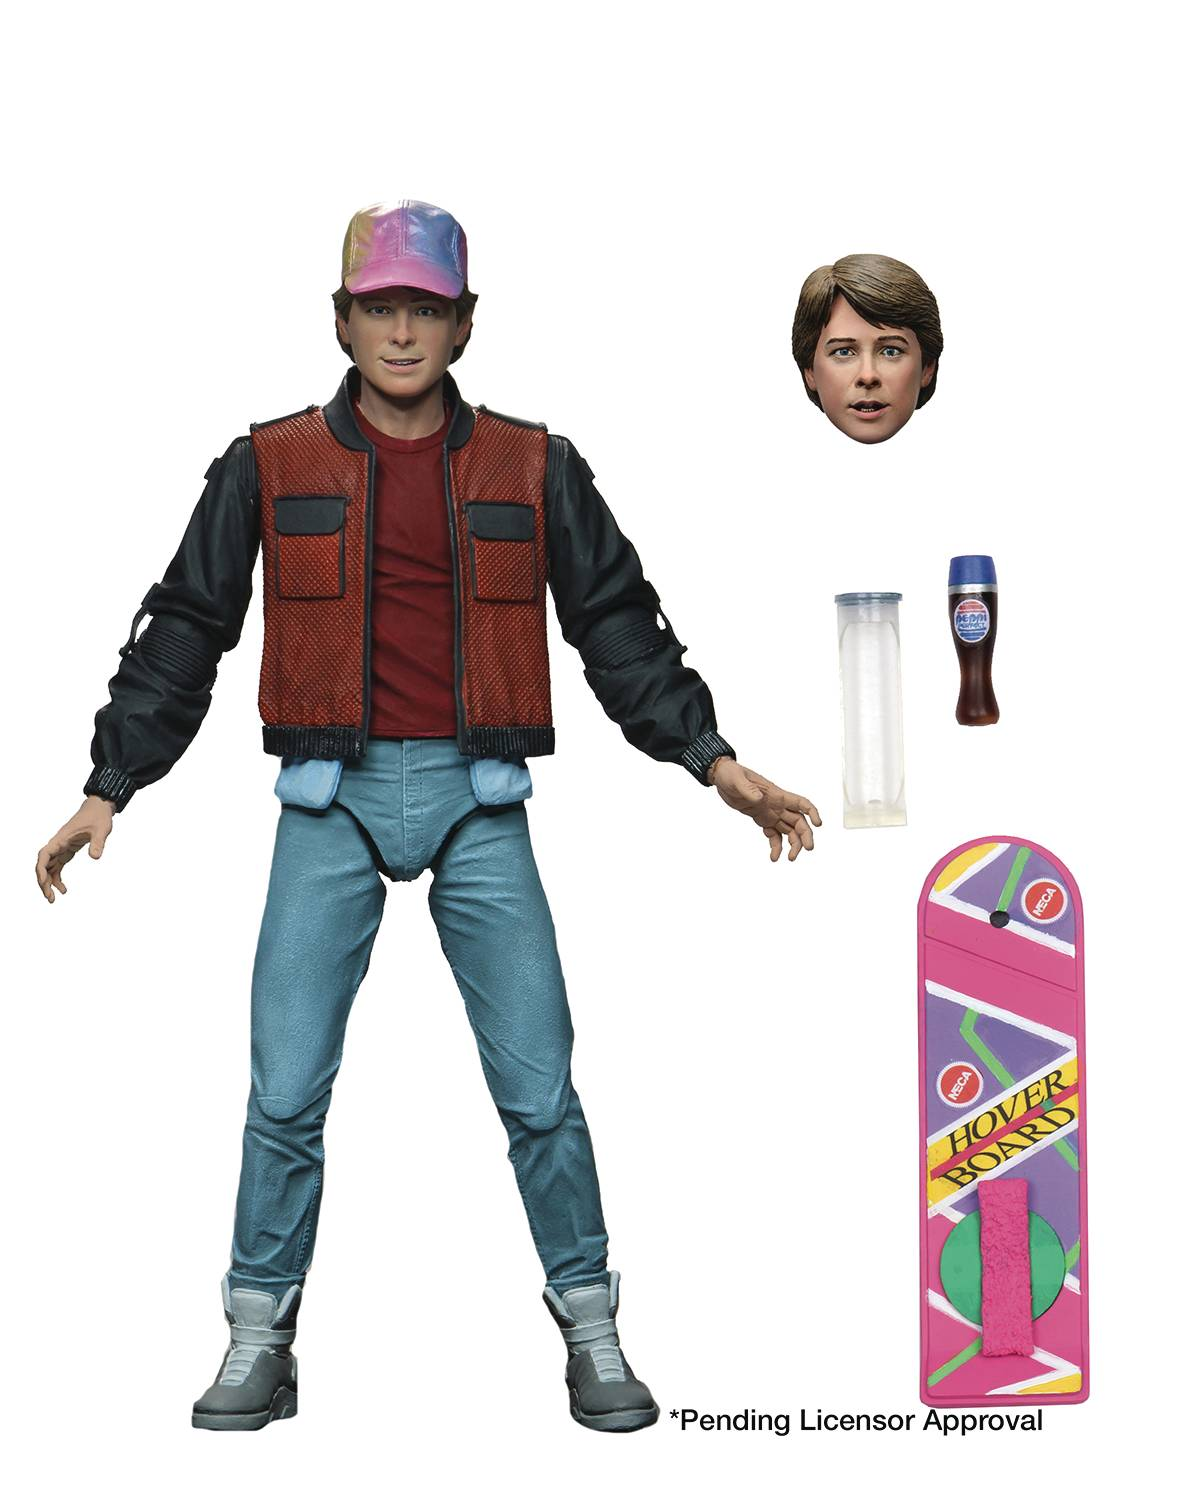 ULTIMATE MARTY MCFLY BACK TO THE FUTURE 2 - NECA 7 INCH ACTION FIGURE